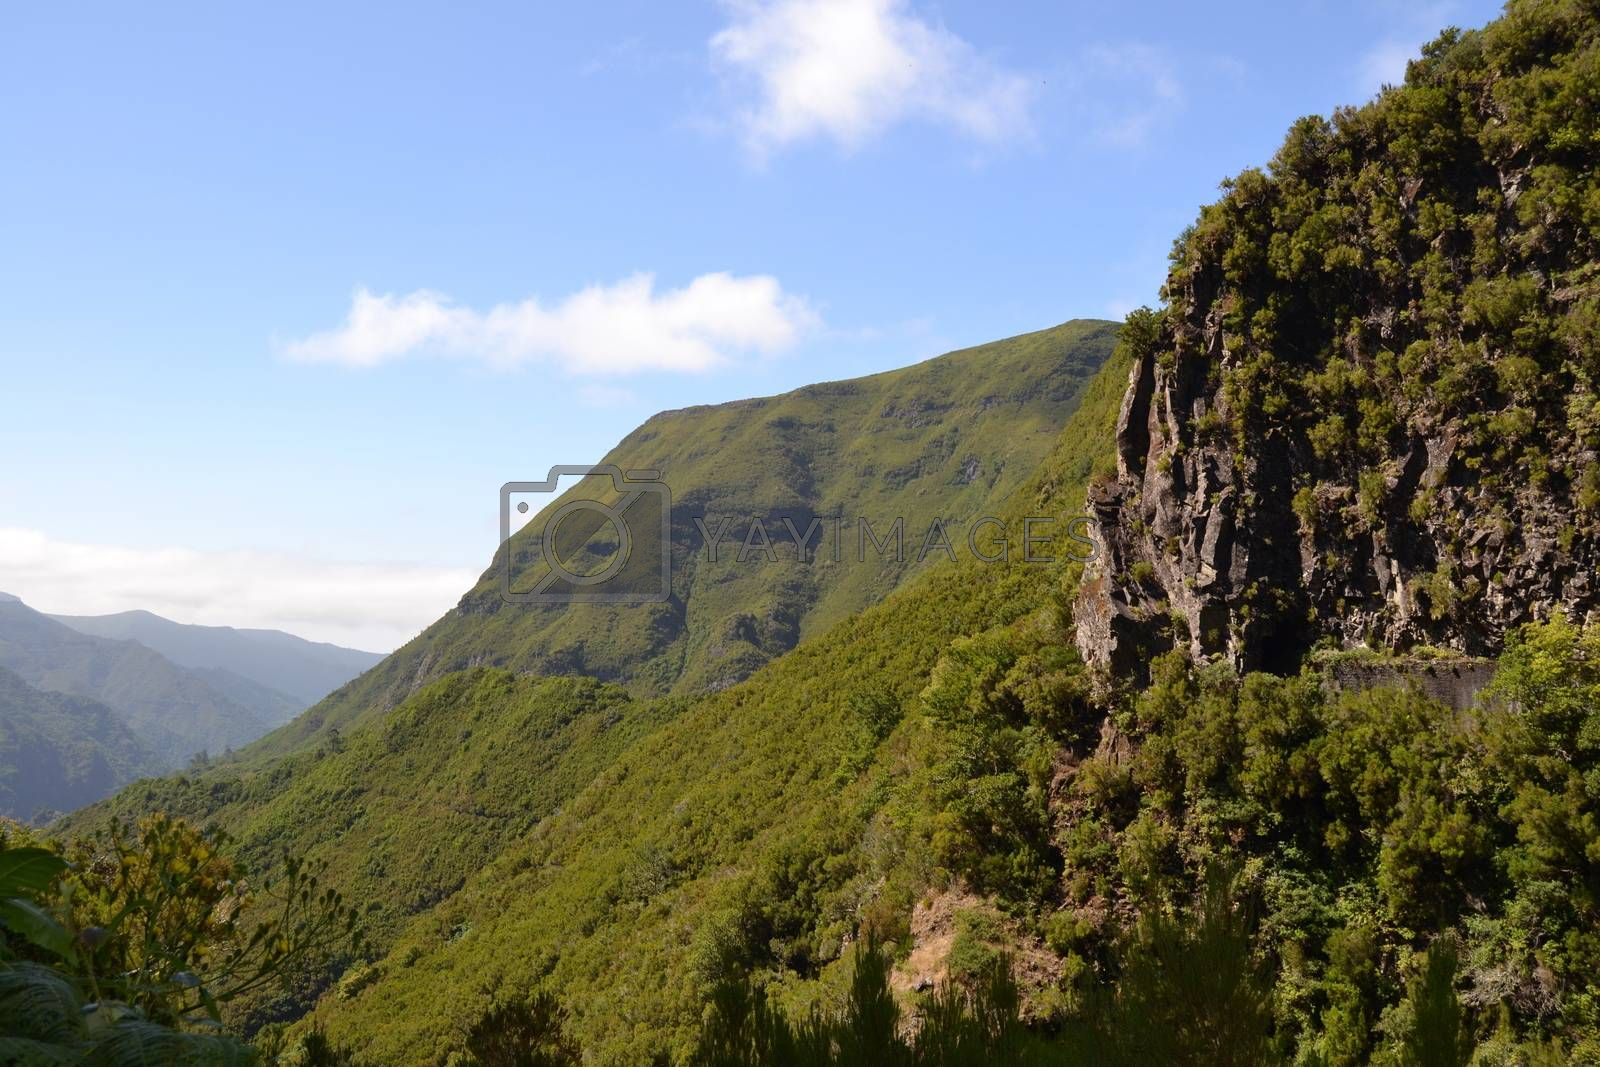 Nice view of the mountain on the island of Madeira, Portugal